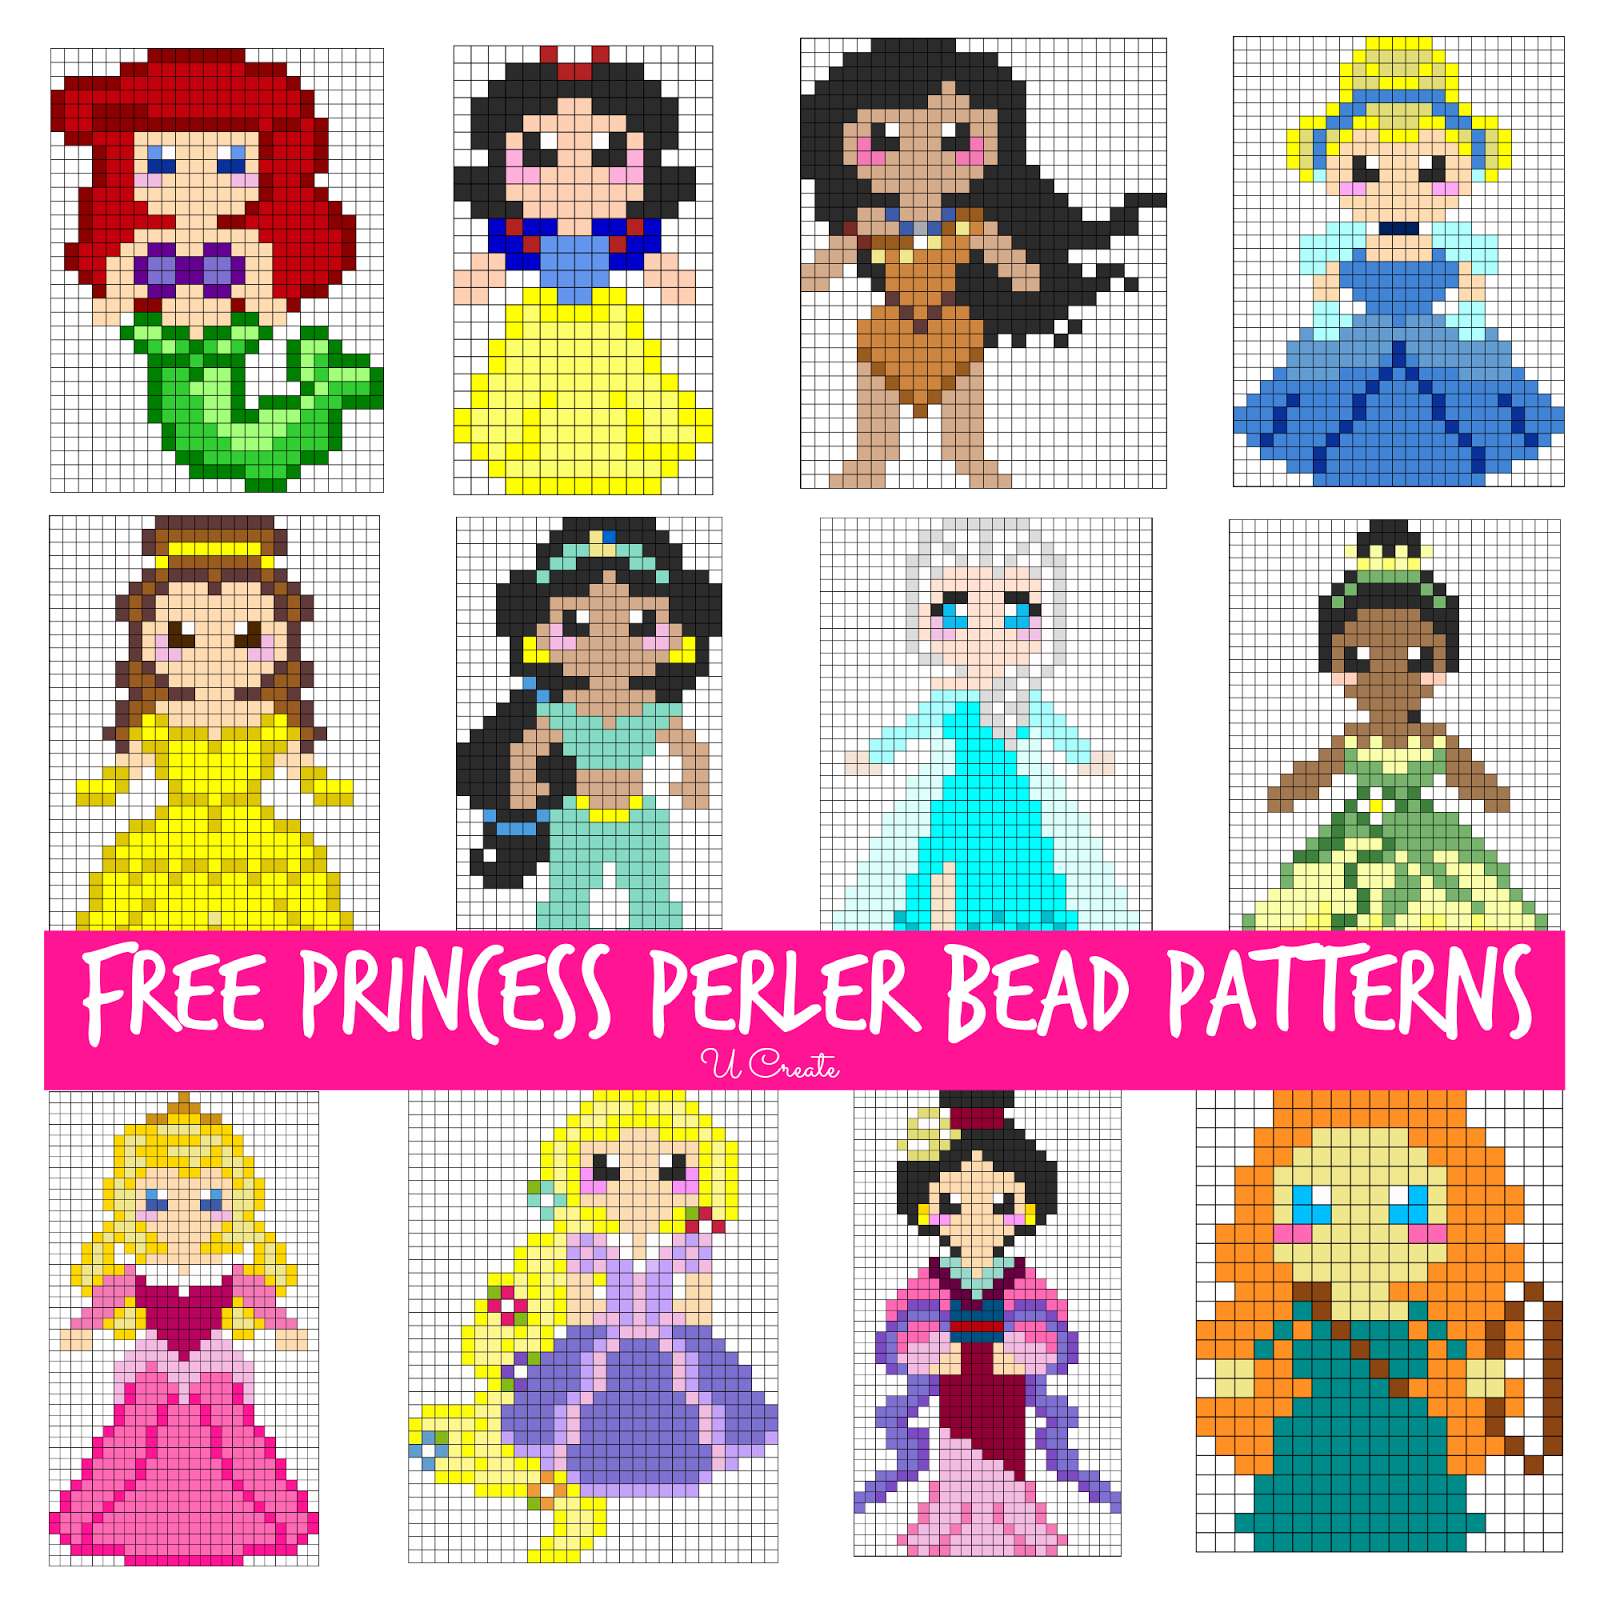 free perler bead patterns for kids  [ 1600 x 1600 Pixel ]